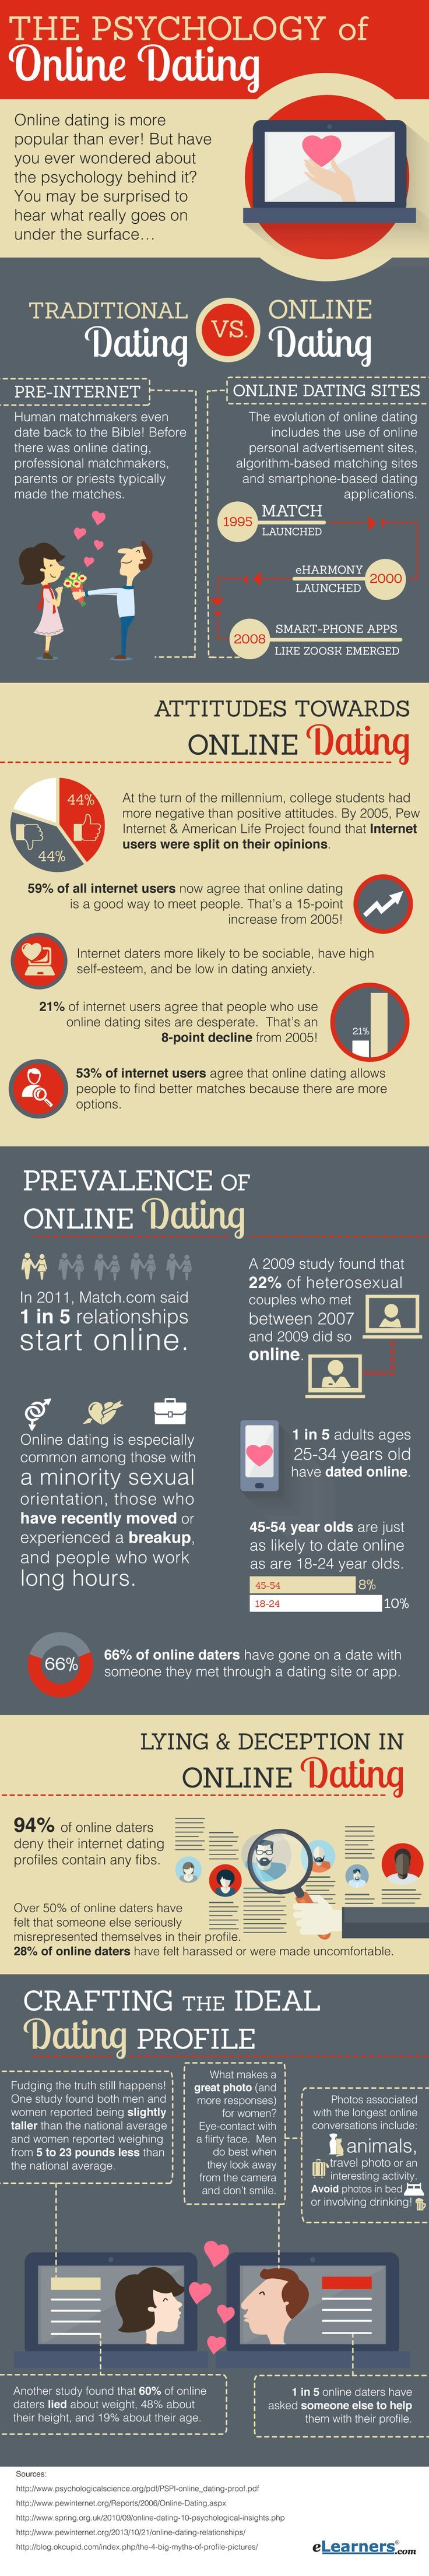 Thanks to online dating, traditional dating has changed a lot to this day. Follow this data chart on the psychology behind it.